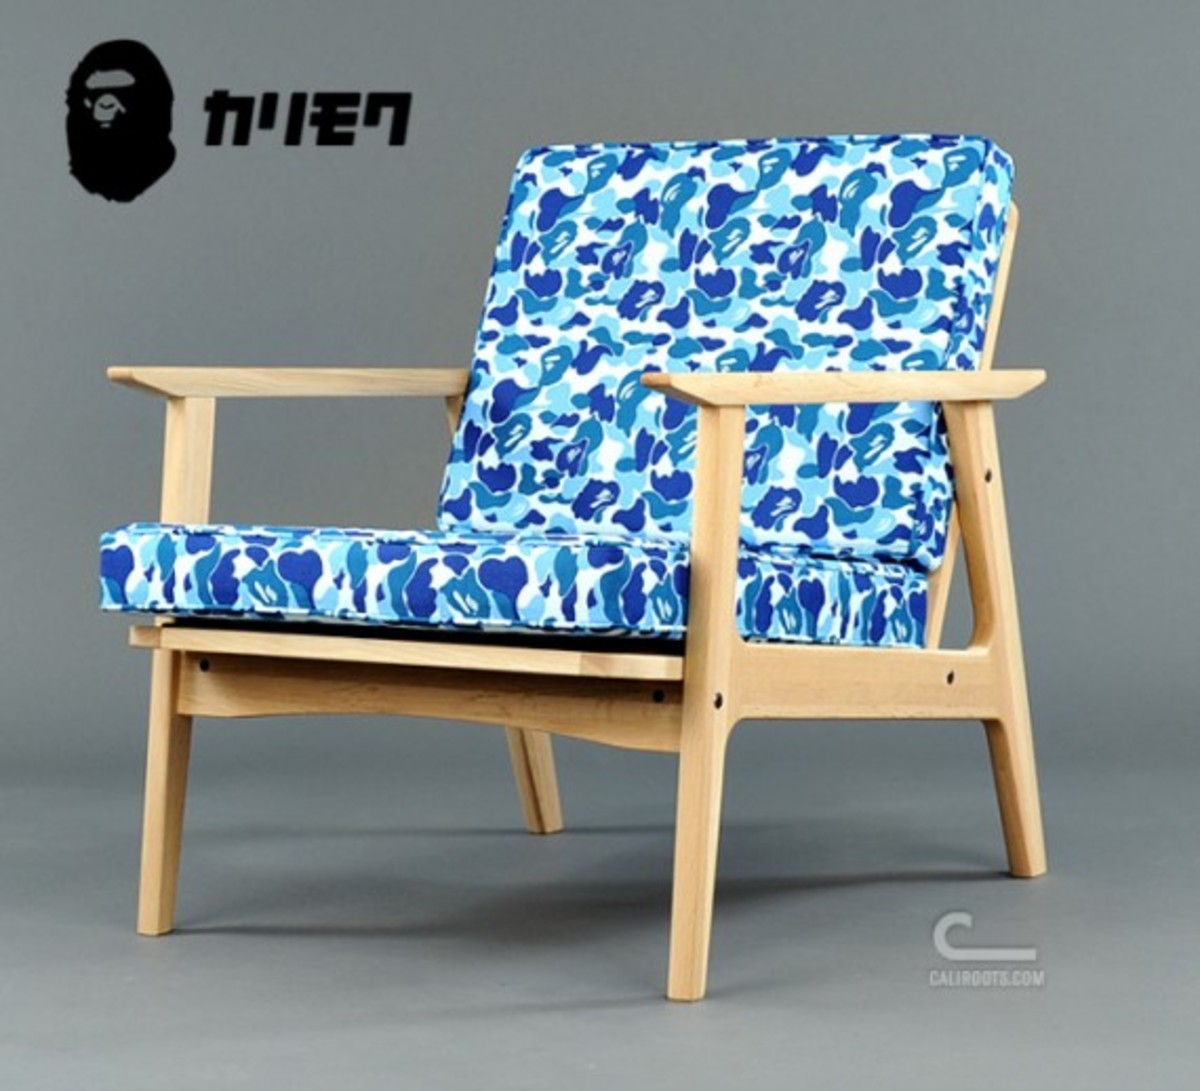 a-bathing-ape-medicom-toy-karimoku-bape-camo-furniture-26